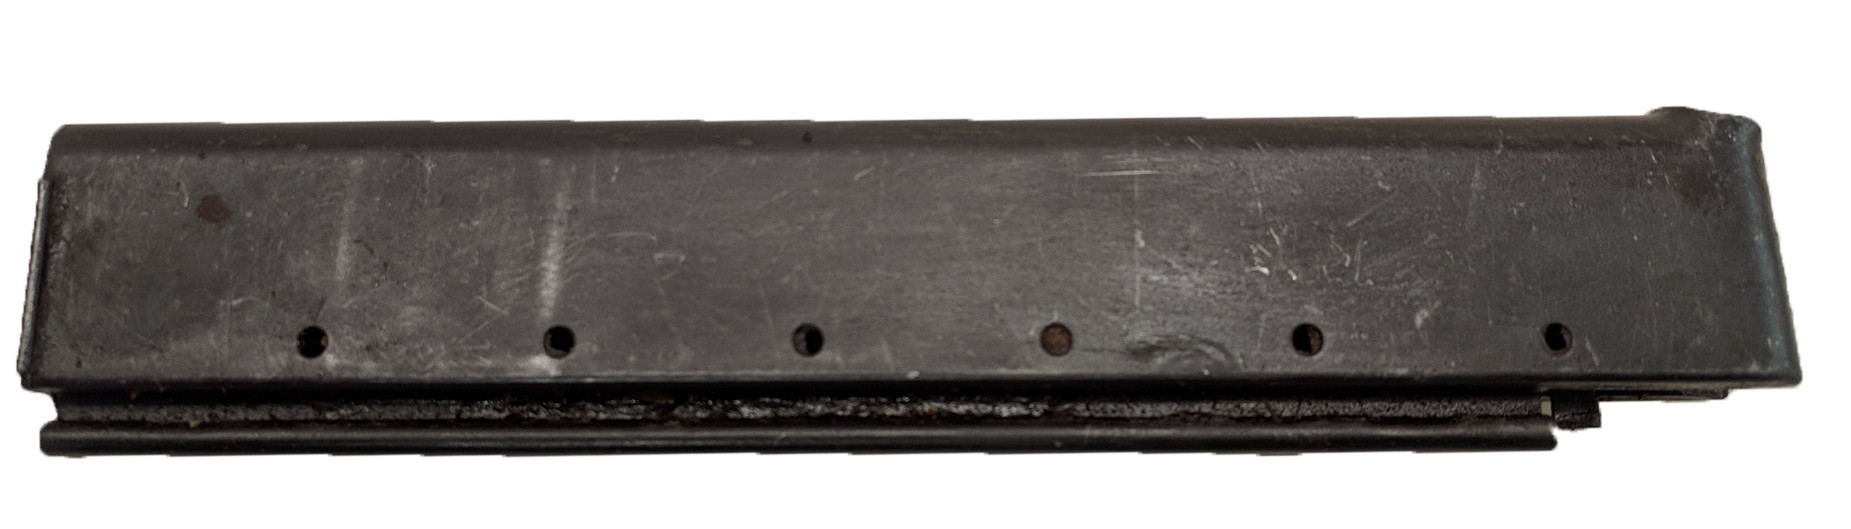 Thompson SMG 30rd Magazine, SW CO, *Good to Very Good*